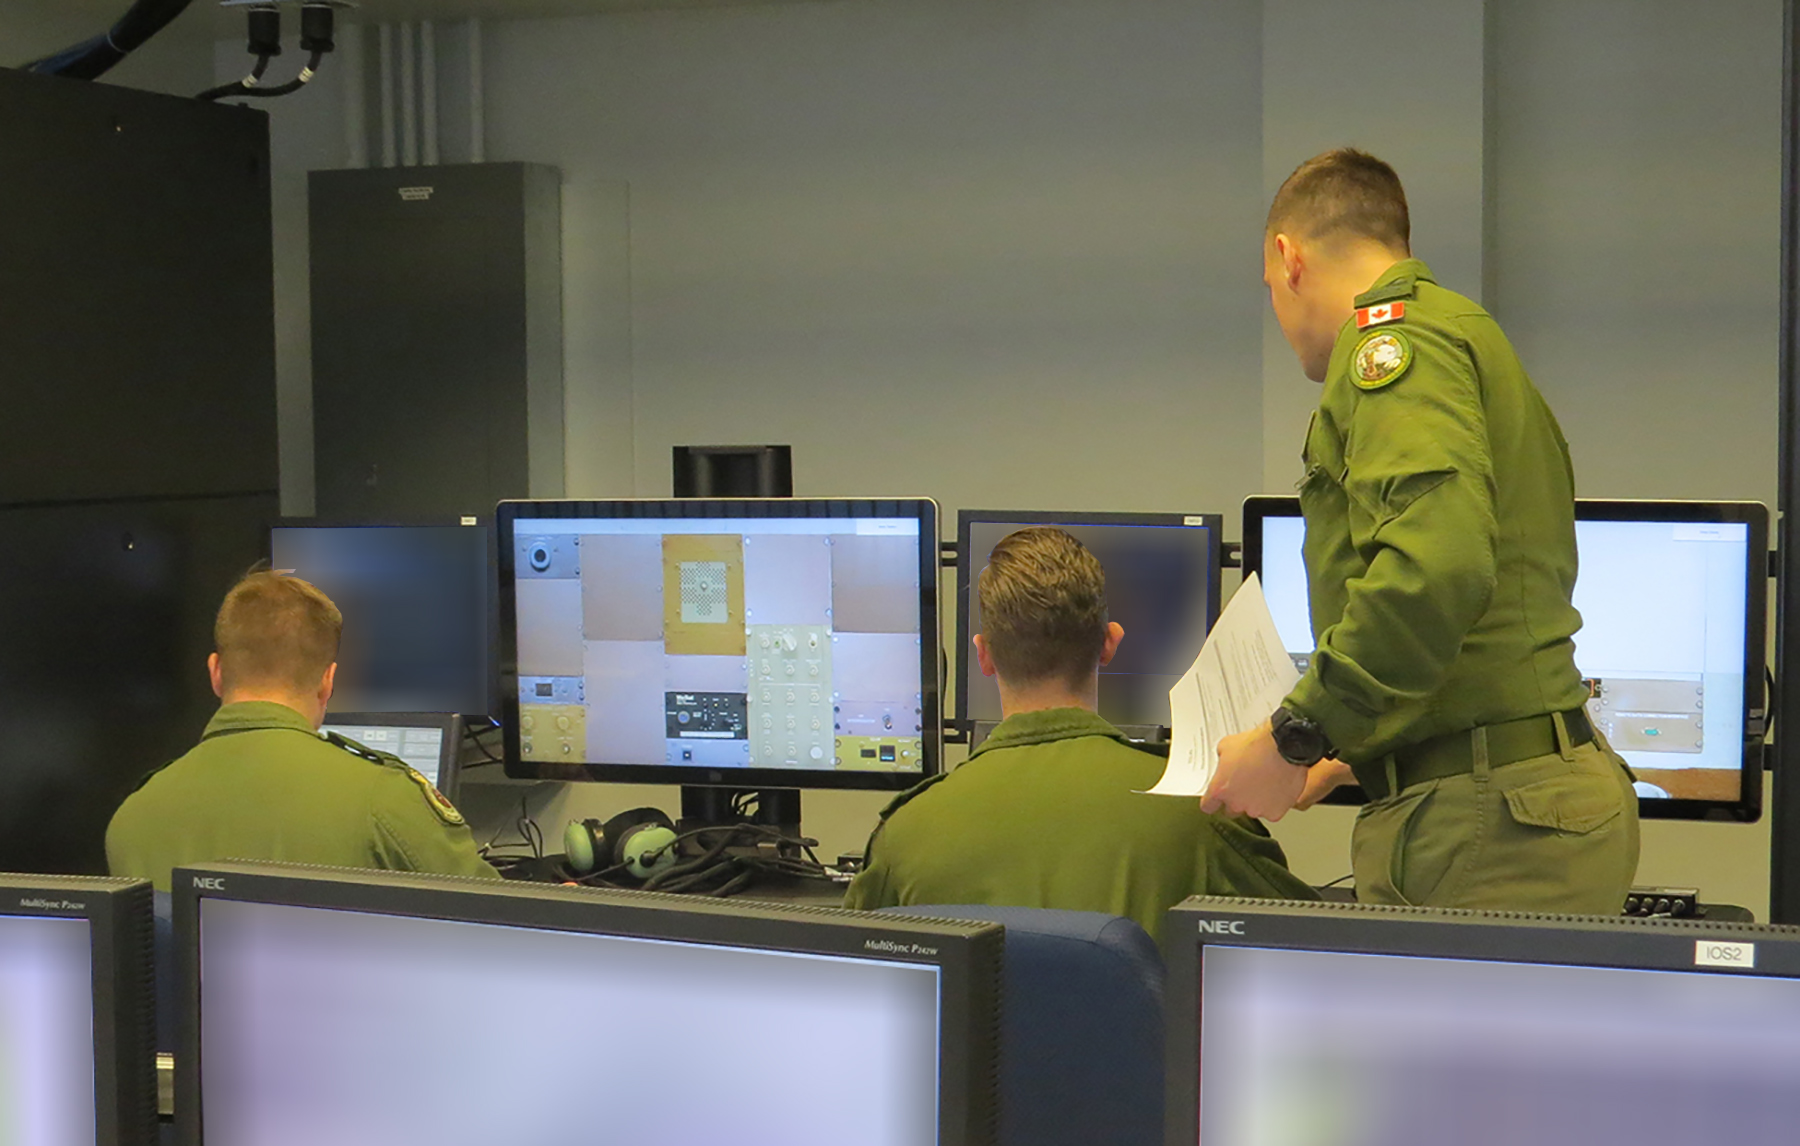 Corporal Matthew Denis (left) and Corporal Connor Slaunwhite work on the Procedural Crew Trainer System at 402 Squadron, under the tutelage of Sergeant Spencer Cass. PHOTO: Officer Cadet Kylie Penney